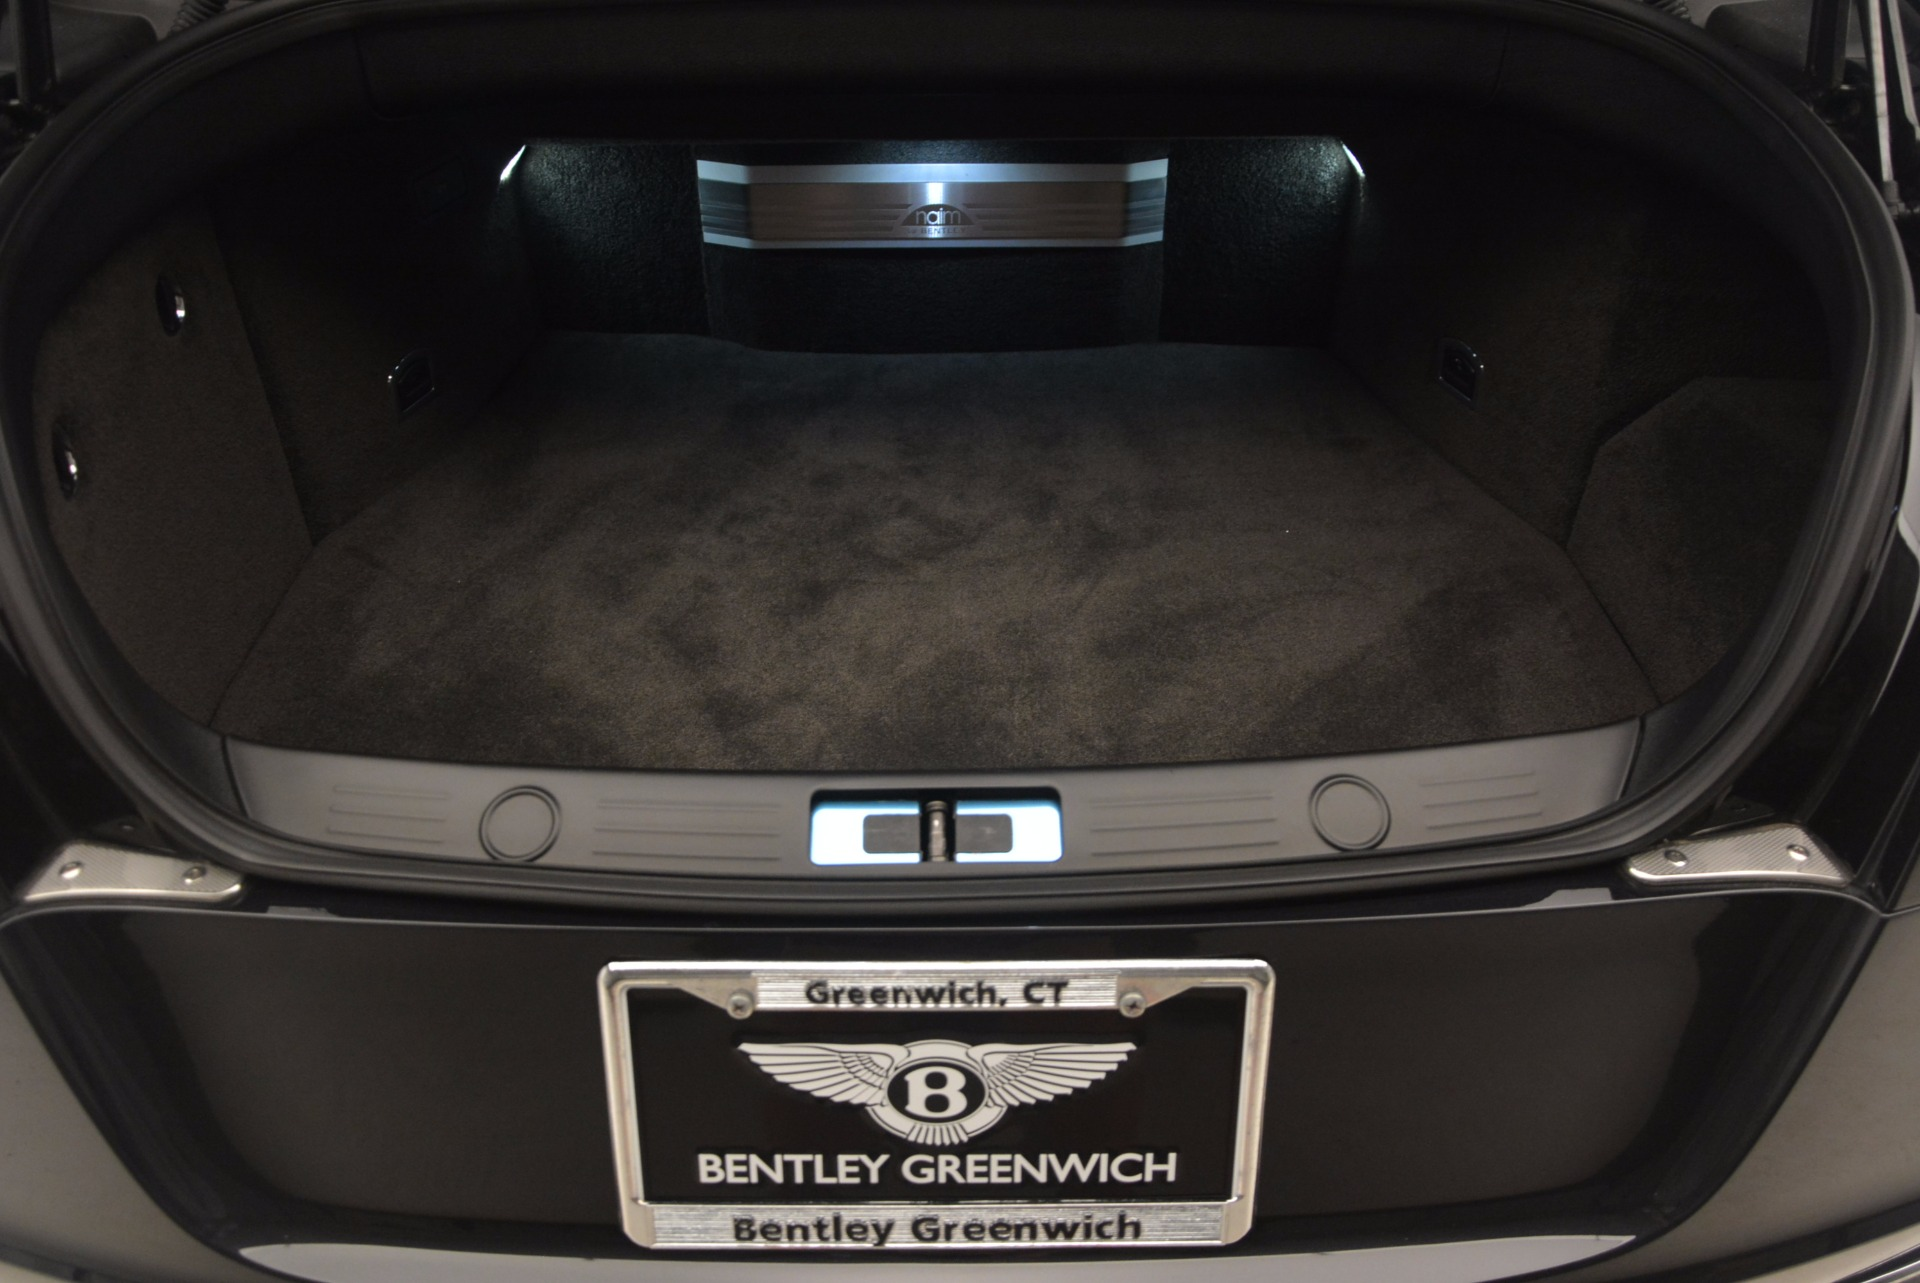 Used 2012 Bentley Continental GT W12 Convertible For Sale In Greenwich, CT 1104_p51